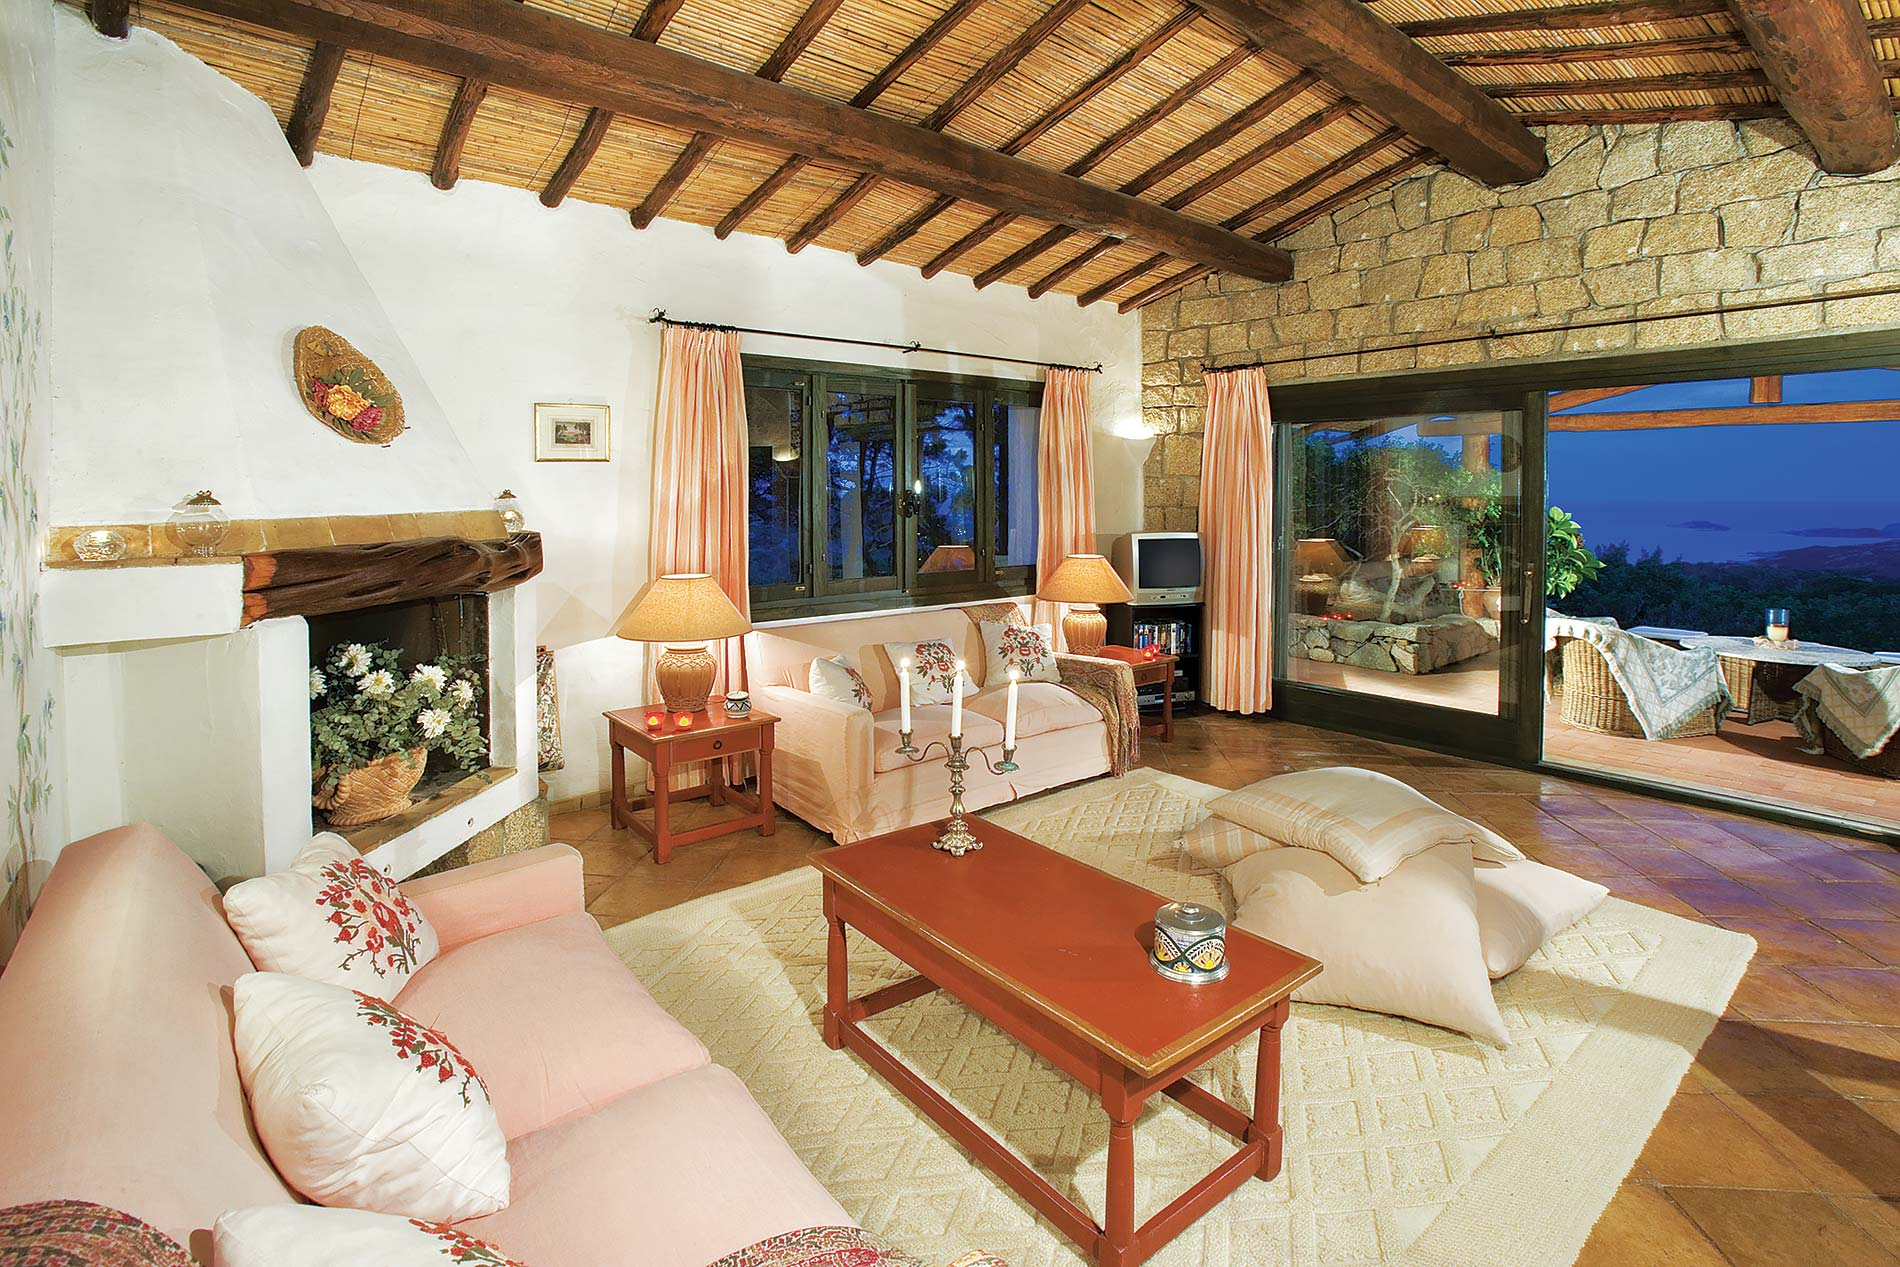 Villa Ulrika in Porto Cervo - sleeps 10 people